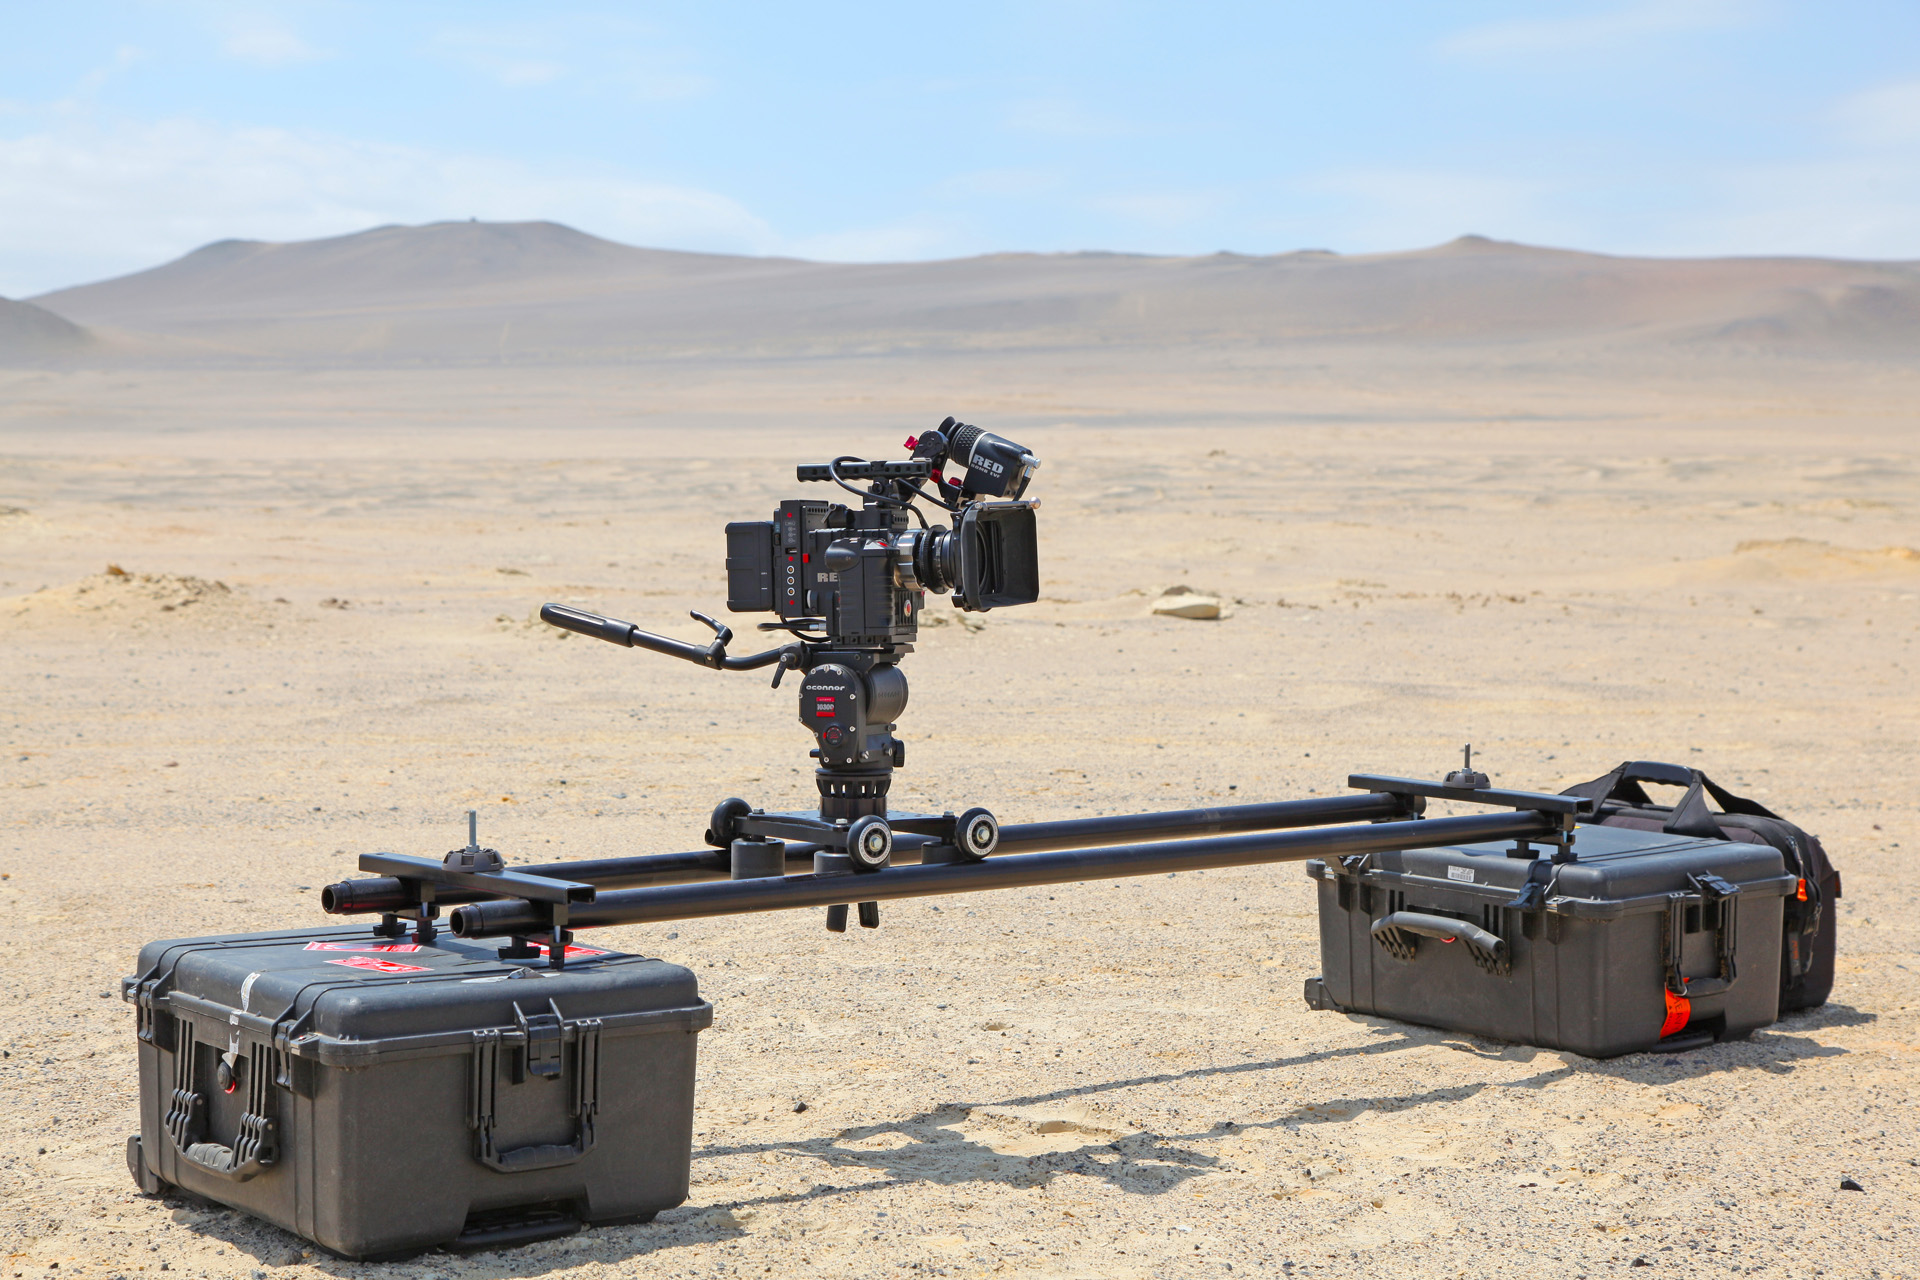 Slider dolly for cinematography and filmmaking